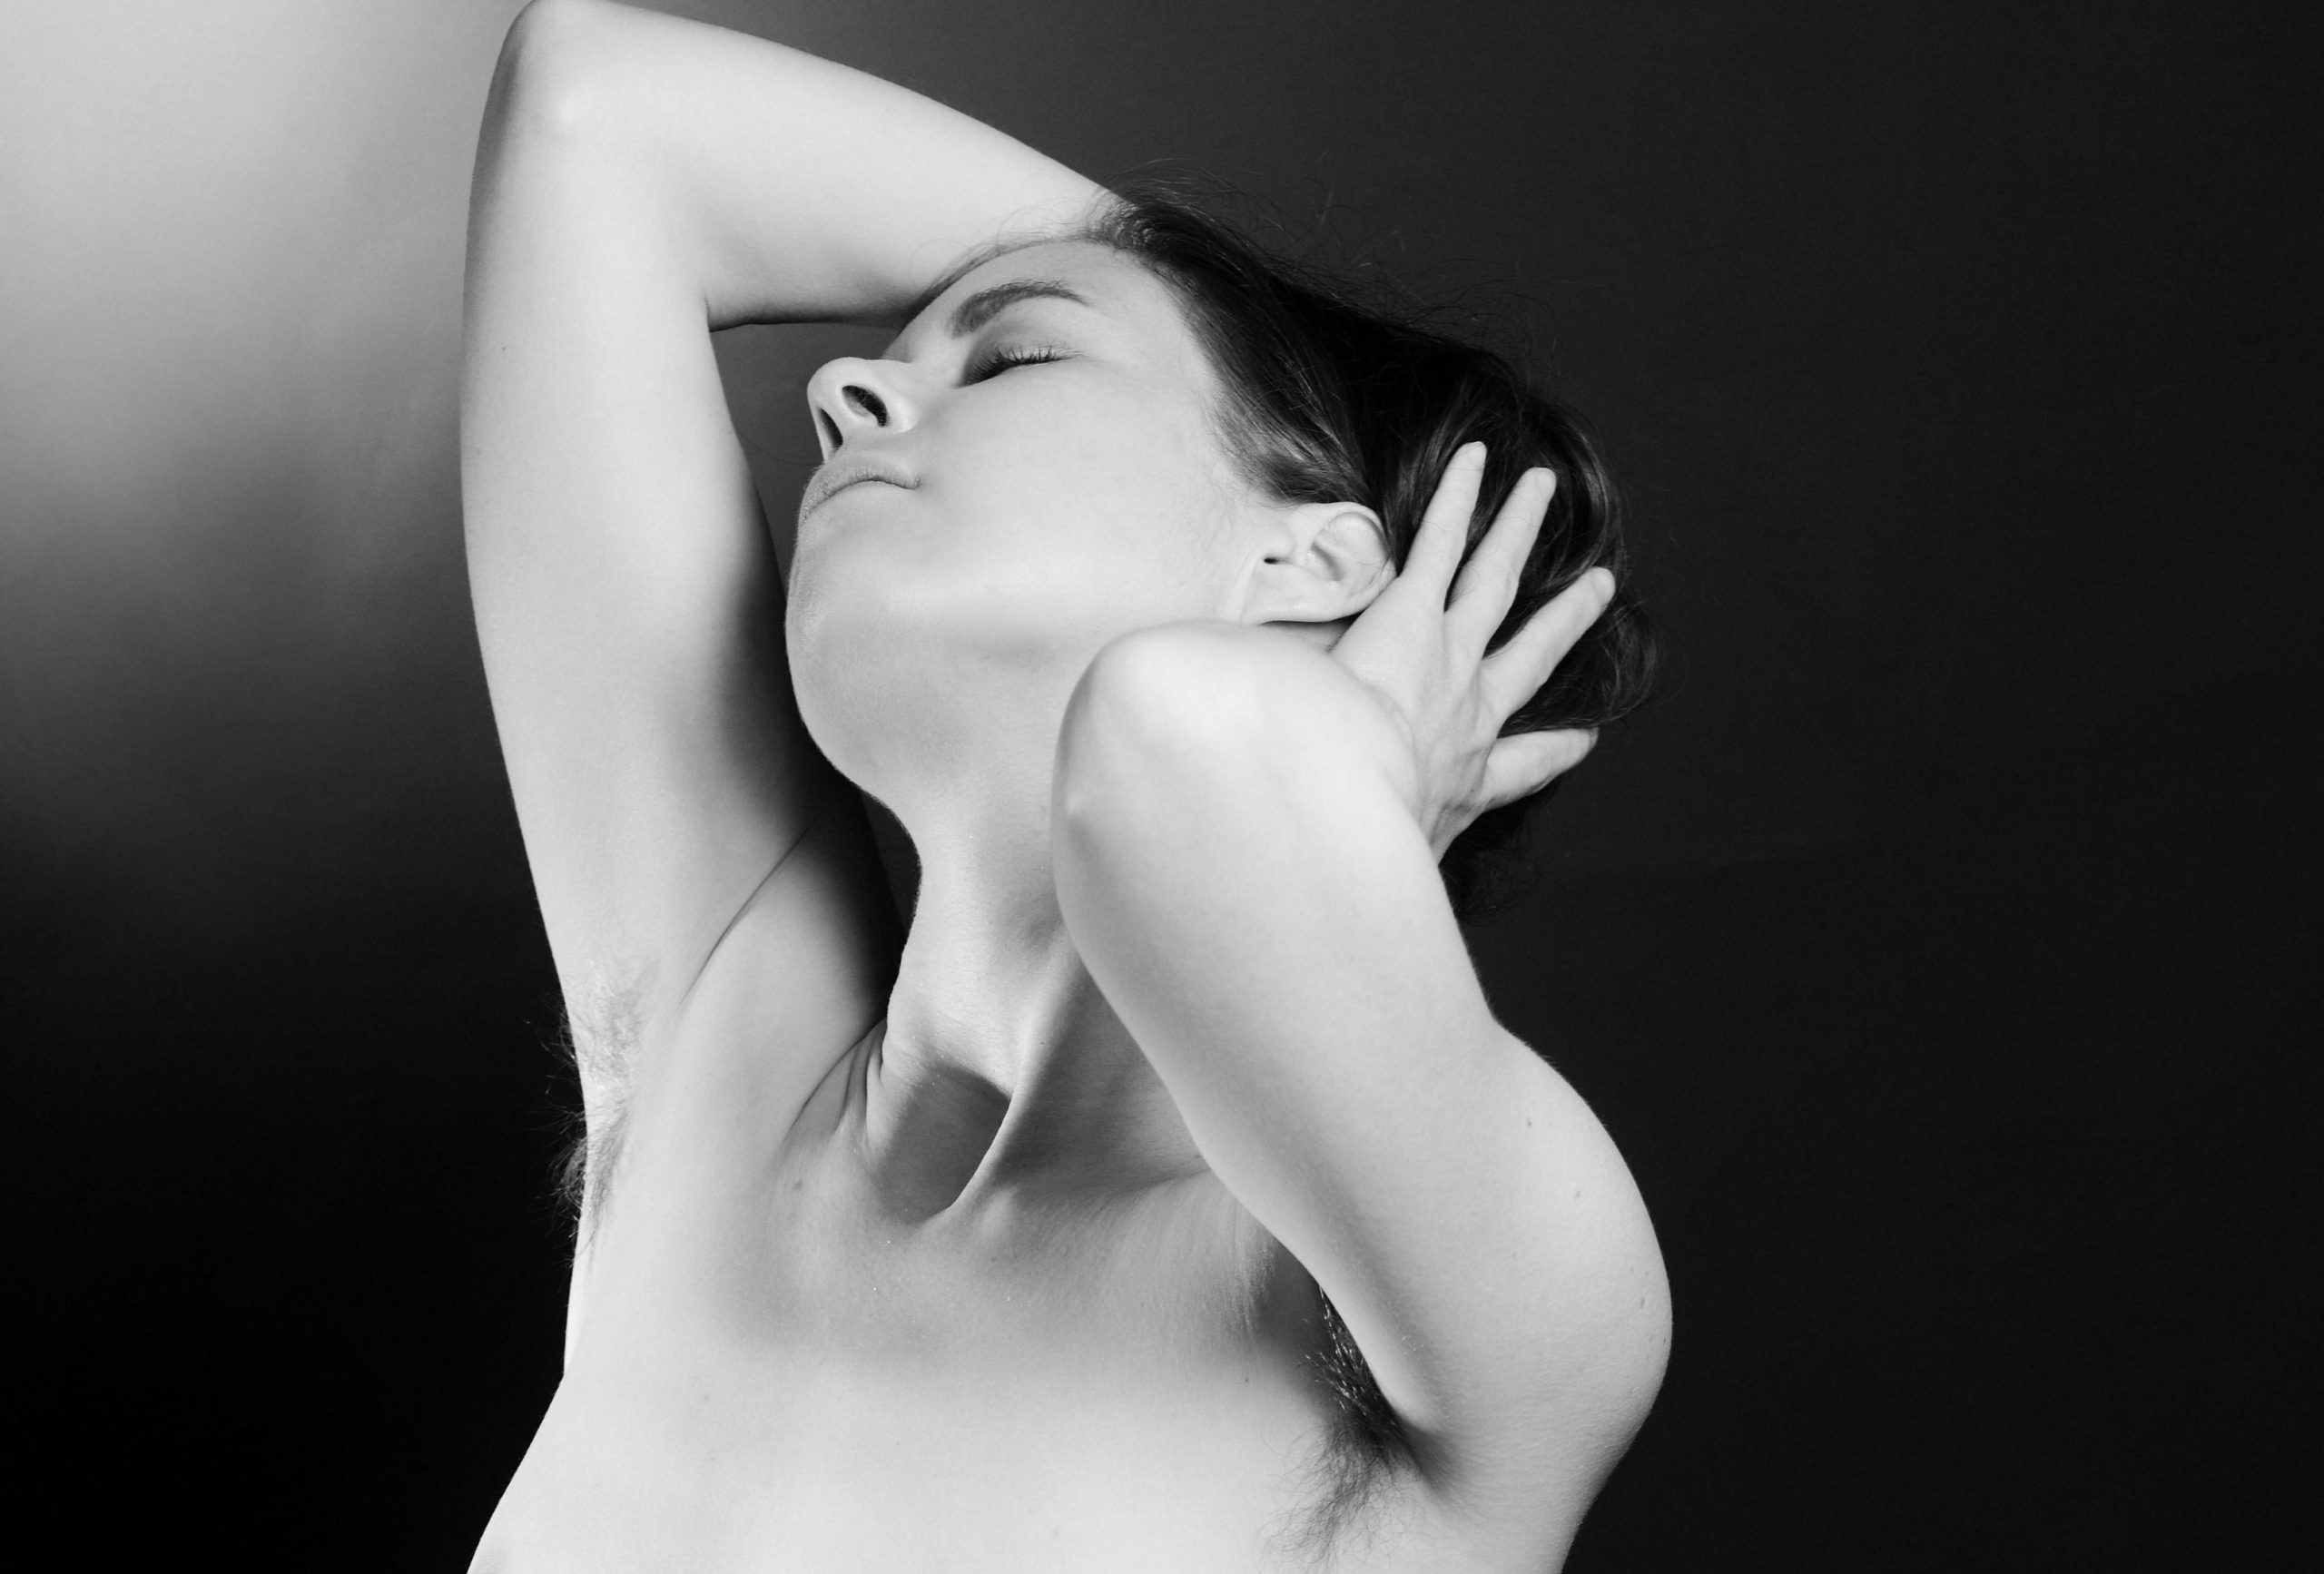 Girl showing hairy armpits